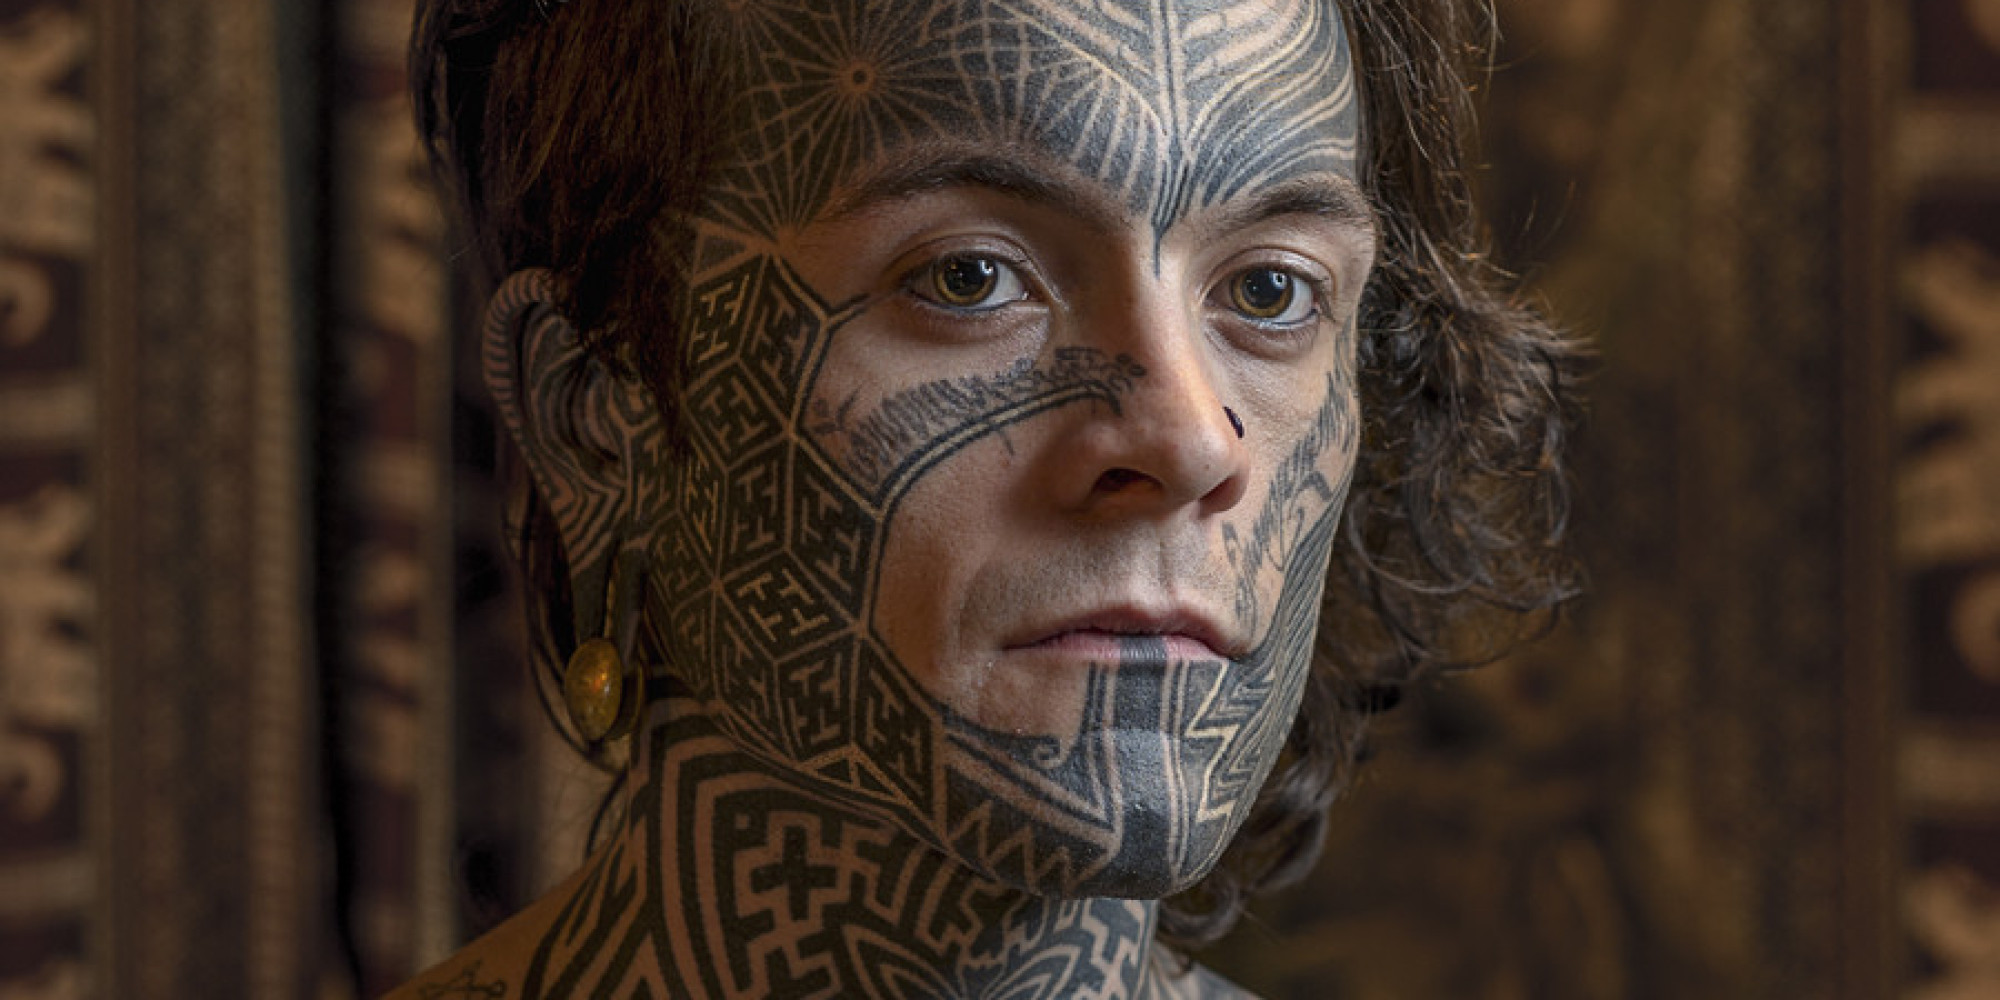 Striking Photos Of Inked Individuals Who Proudly Don Face Ideas And Designs